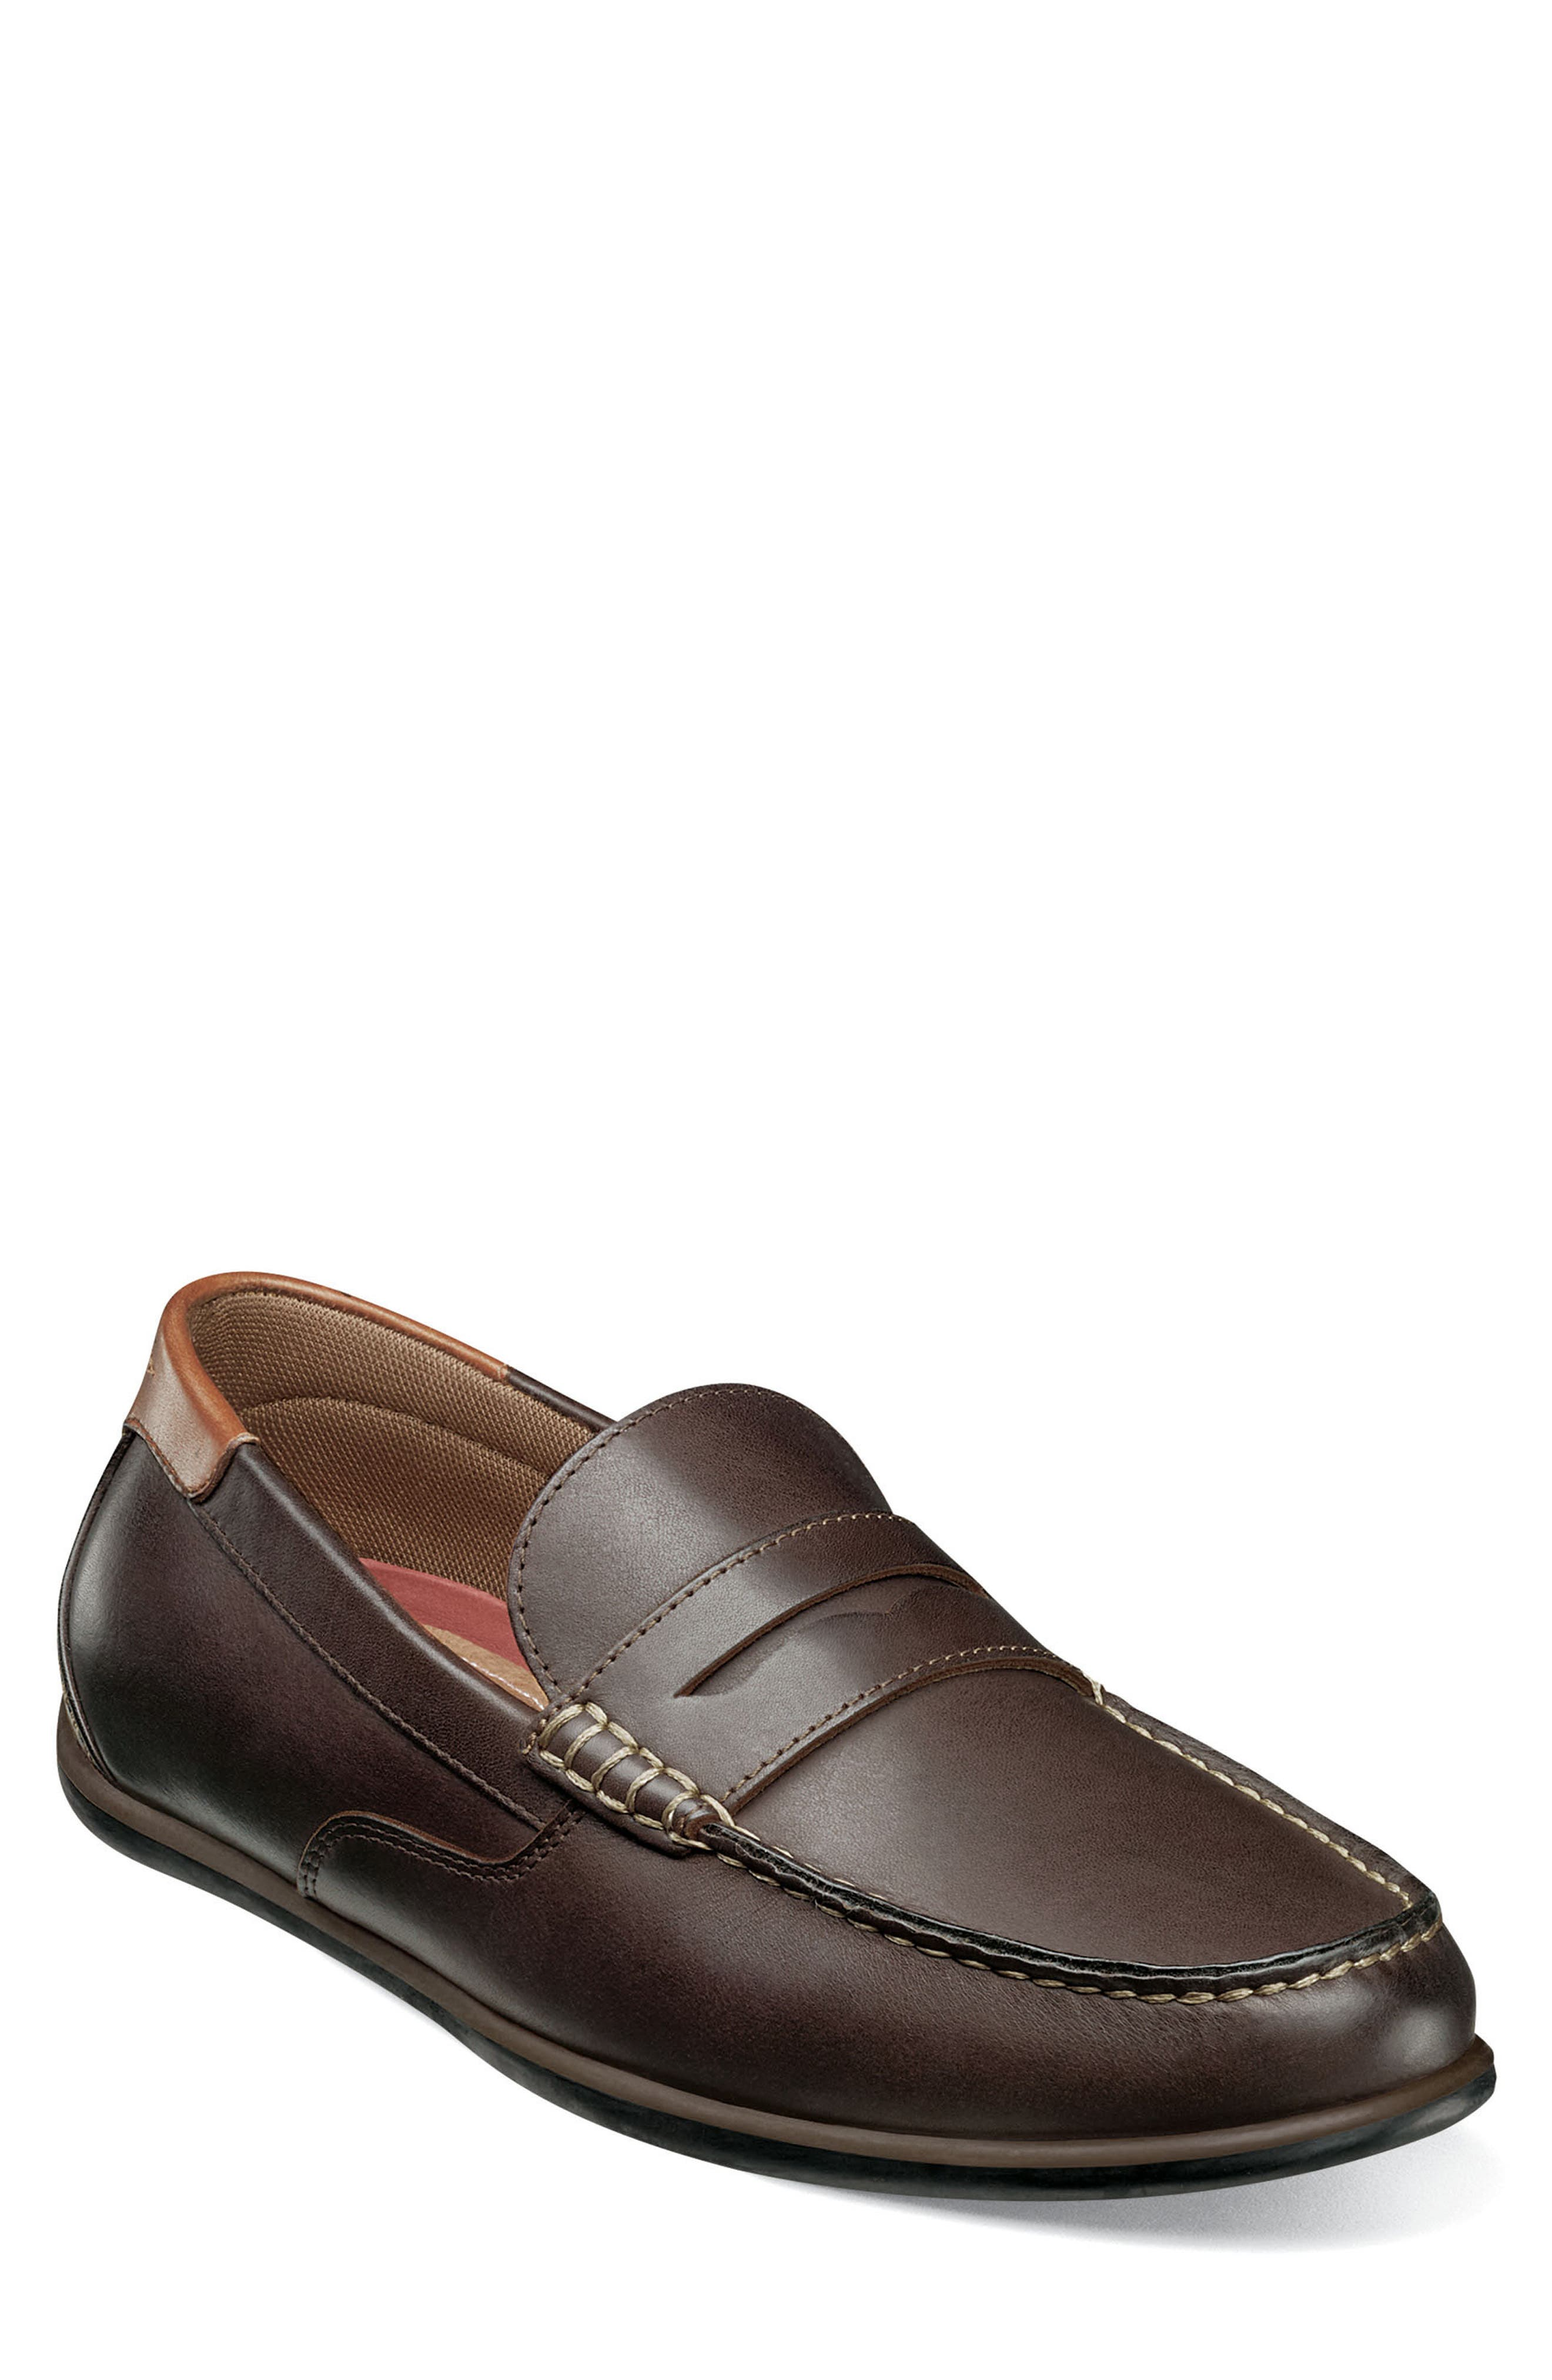 Image of Florsheim Sportster Leather Penny Loafer - Wide Width